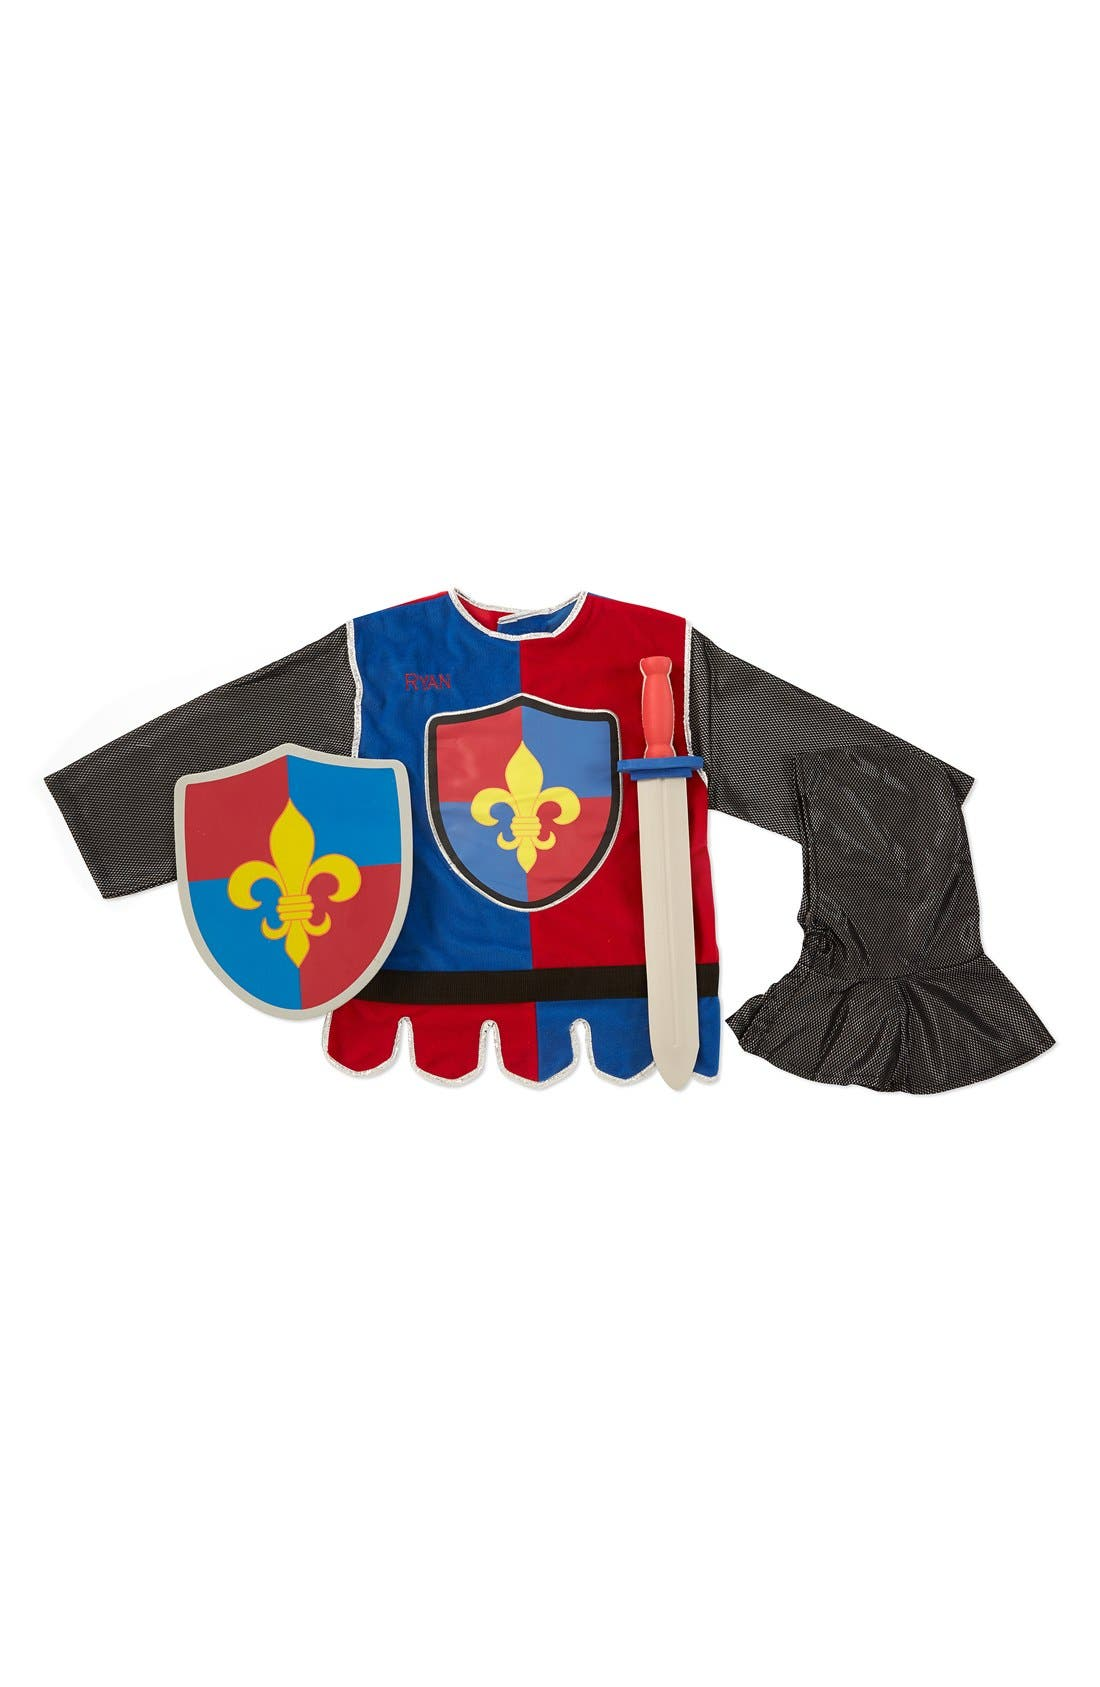 Main Image - Melissa & Doug 'Knight' Personalized Costume Set (Toddler)